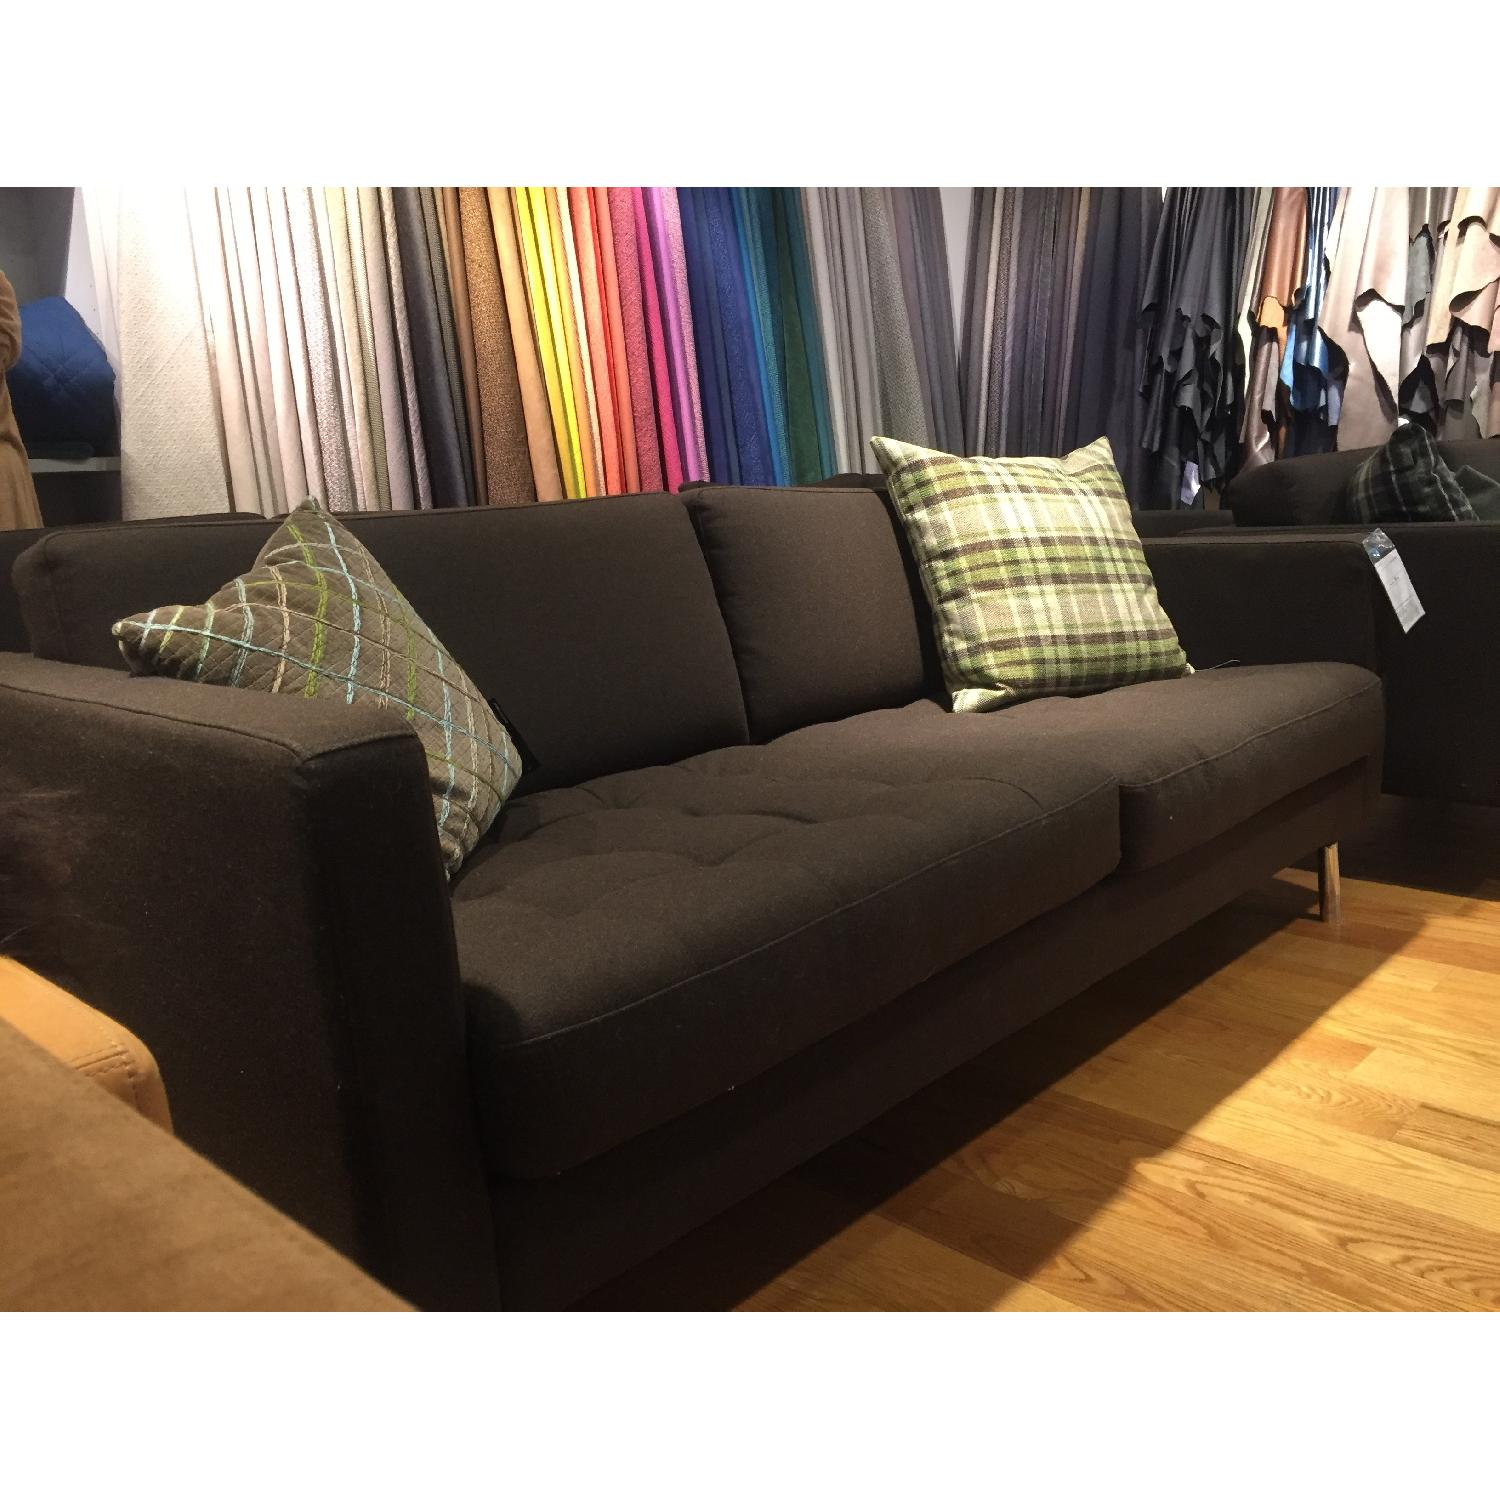 BoConcept Olympia Sofa in Chocolate Lux - image-7